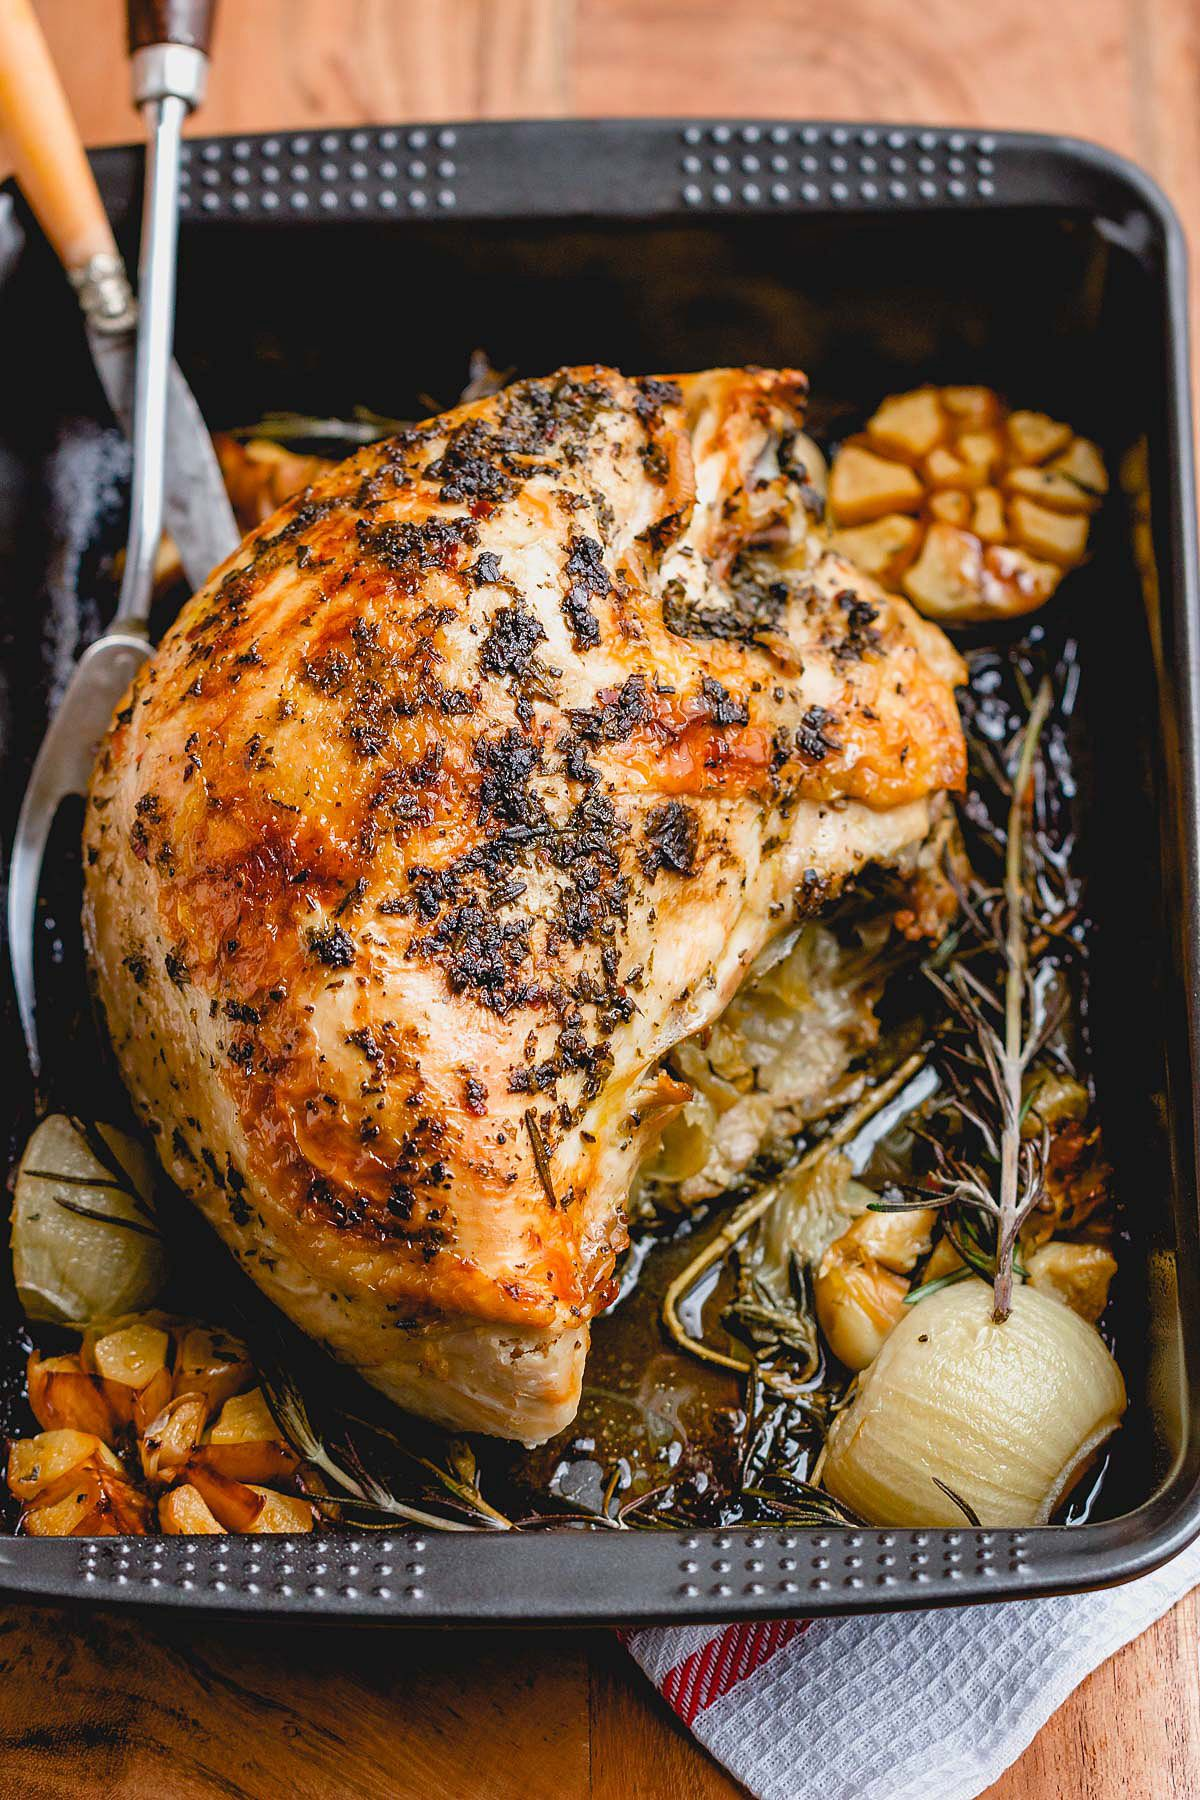 Photo of Roasted Turkey Breast with Garlic Herb Butter